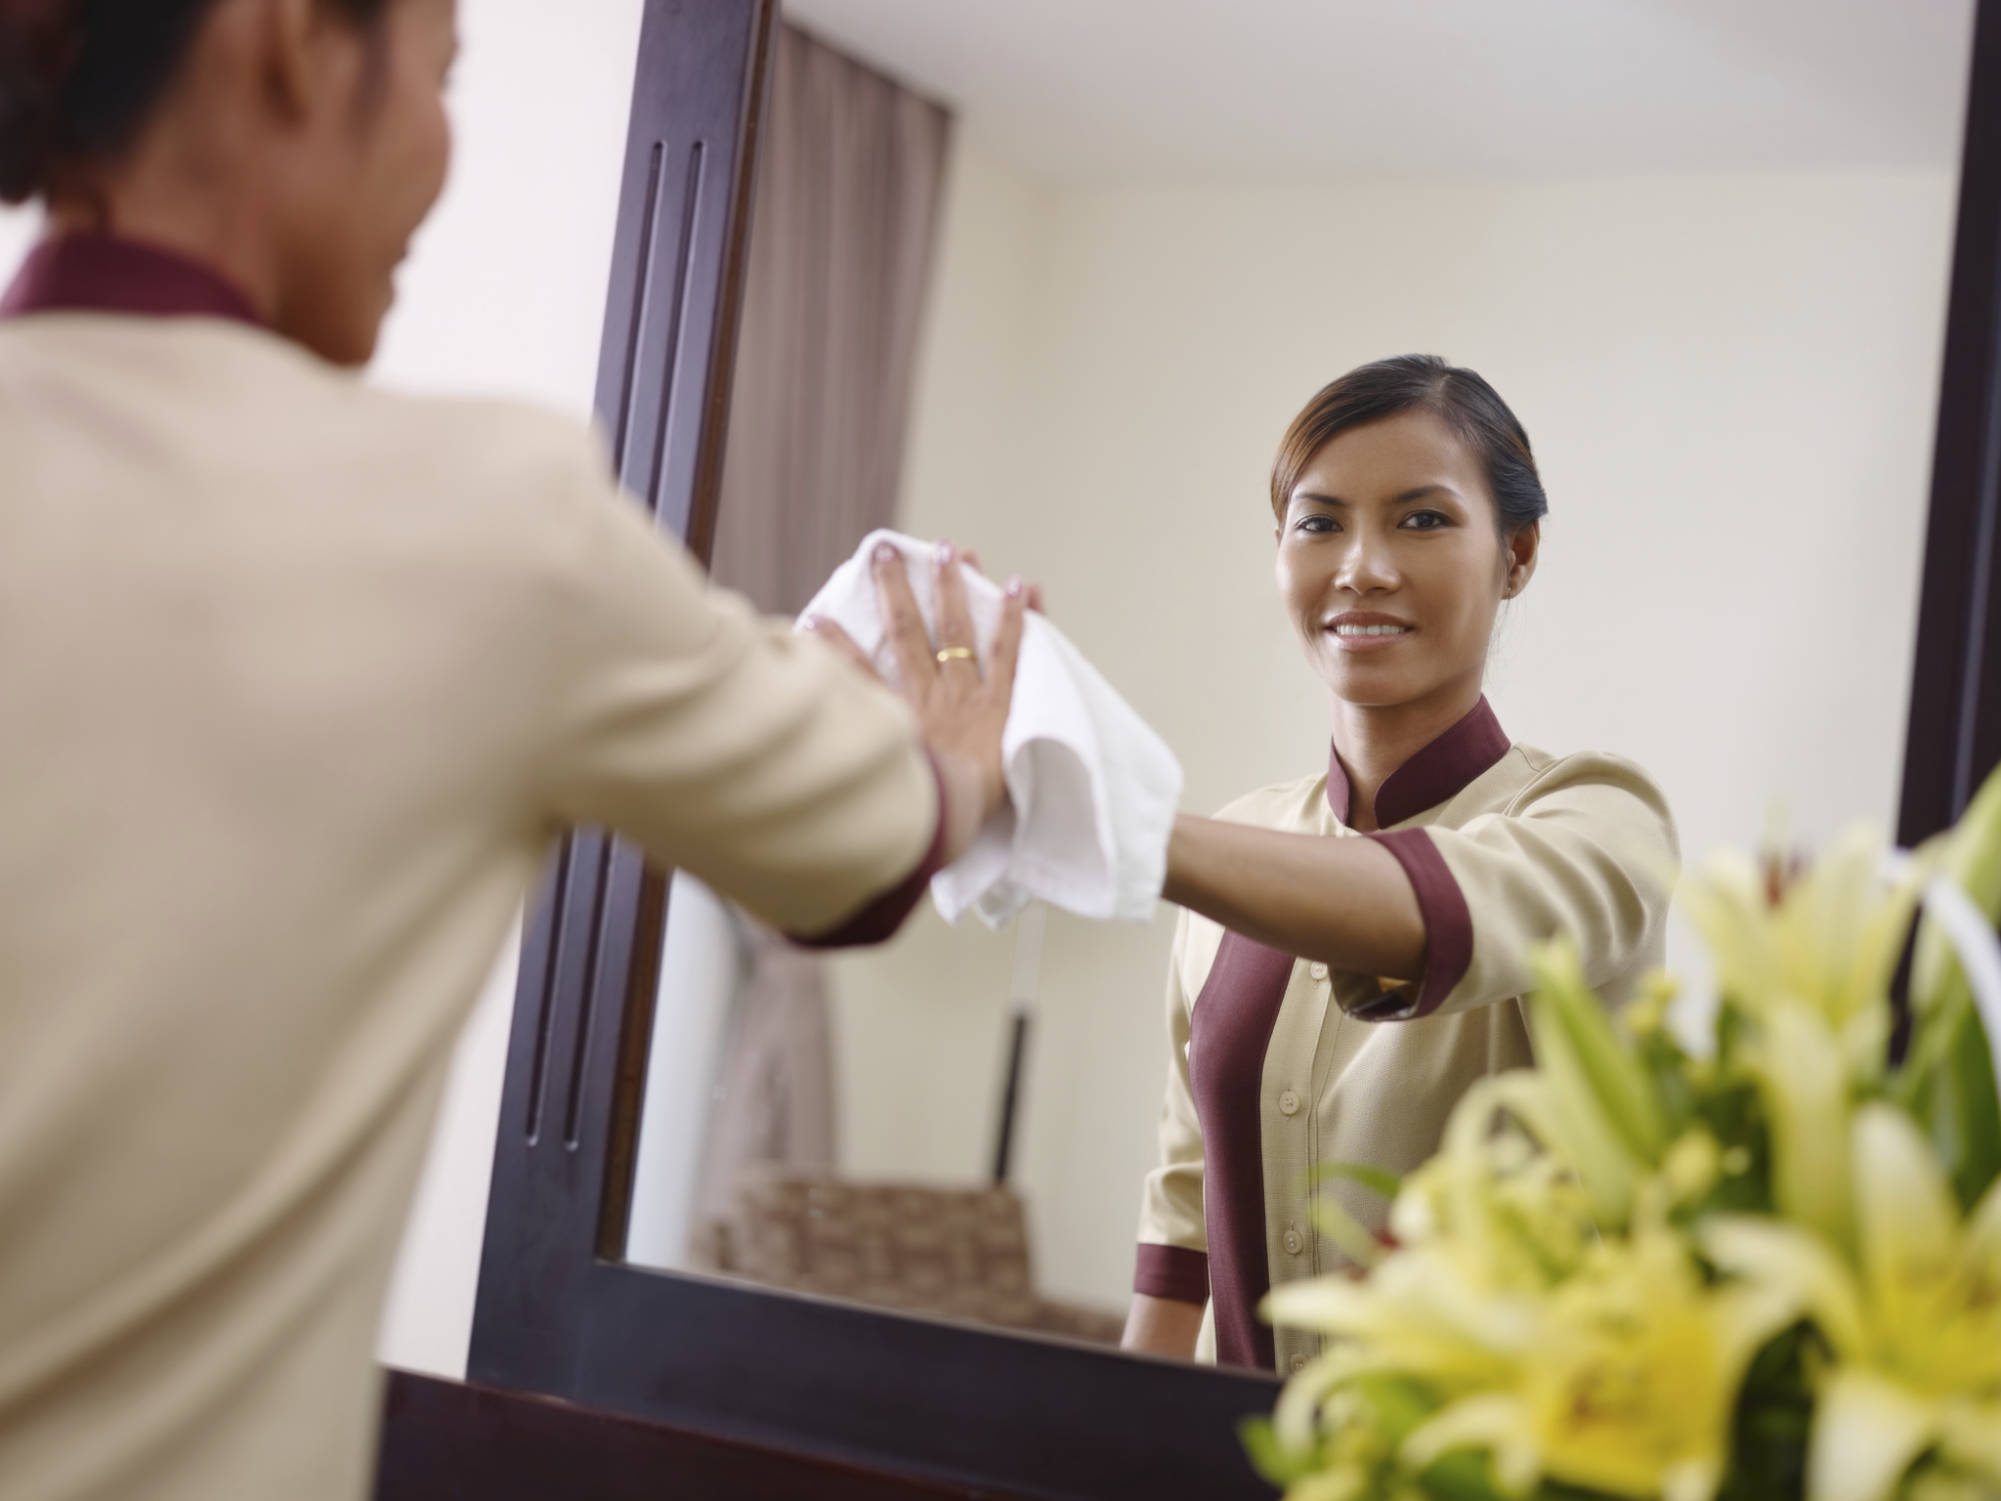 Duties Responsibilities Of Room Attendants